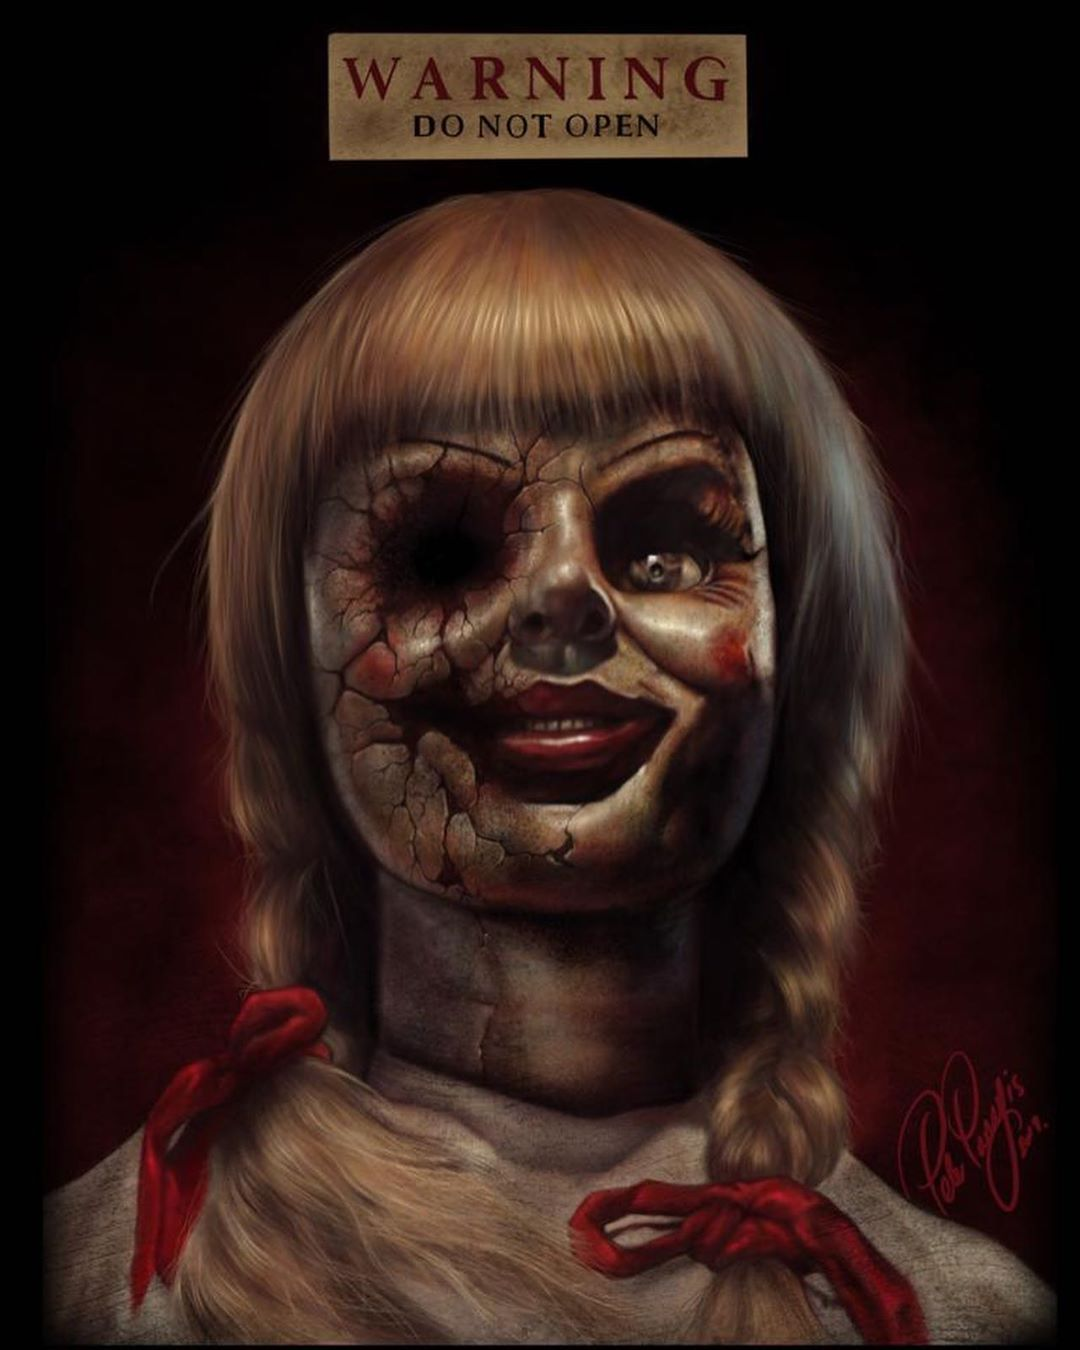 Peter Panayis On Instagram Annabelle Comes Home 2019 An Apt Post For The Uk Film Release Today My Latest P Horror Movie Art Horror Movie Icons Movie Art